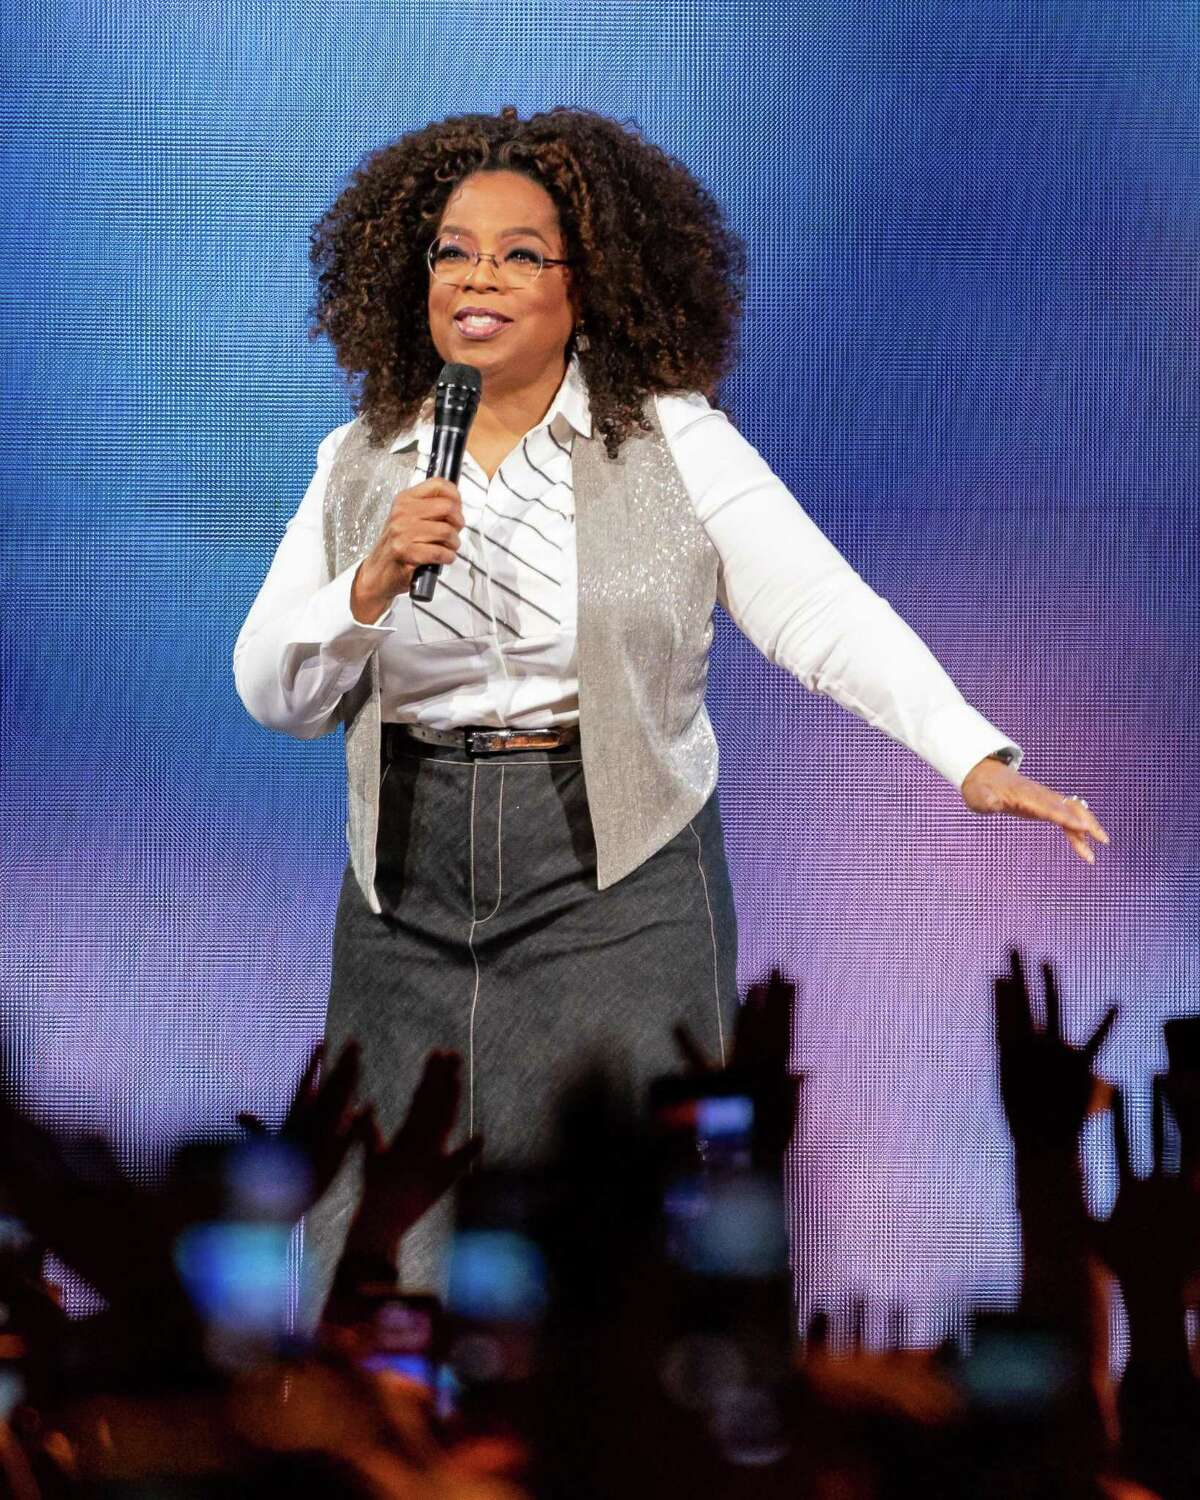 Oprah Winfrey speaks on stage during Oprah's 2020 Vision: Your Life in Focus Tour presented by WW (Weight Watchers Reimagined) at American Airlines Center on February 15, 2020 in Dallas, Texas. (Photo by SUZANNE CORDEIRO / AFP)